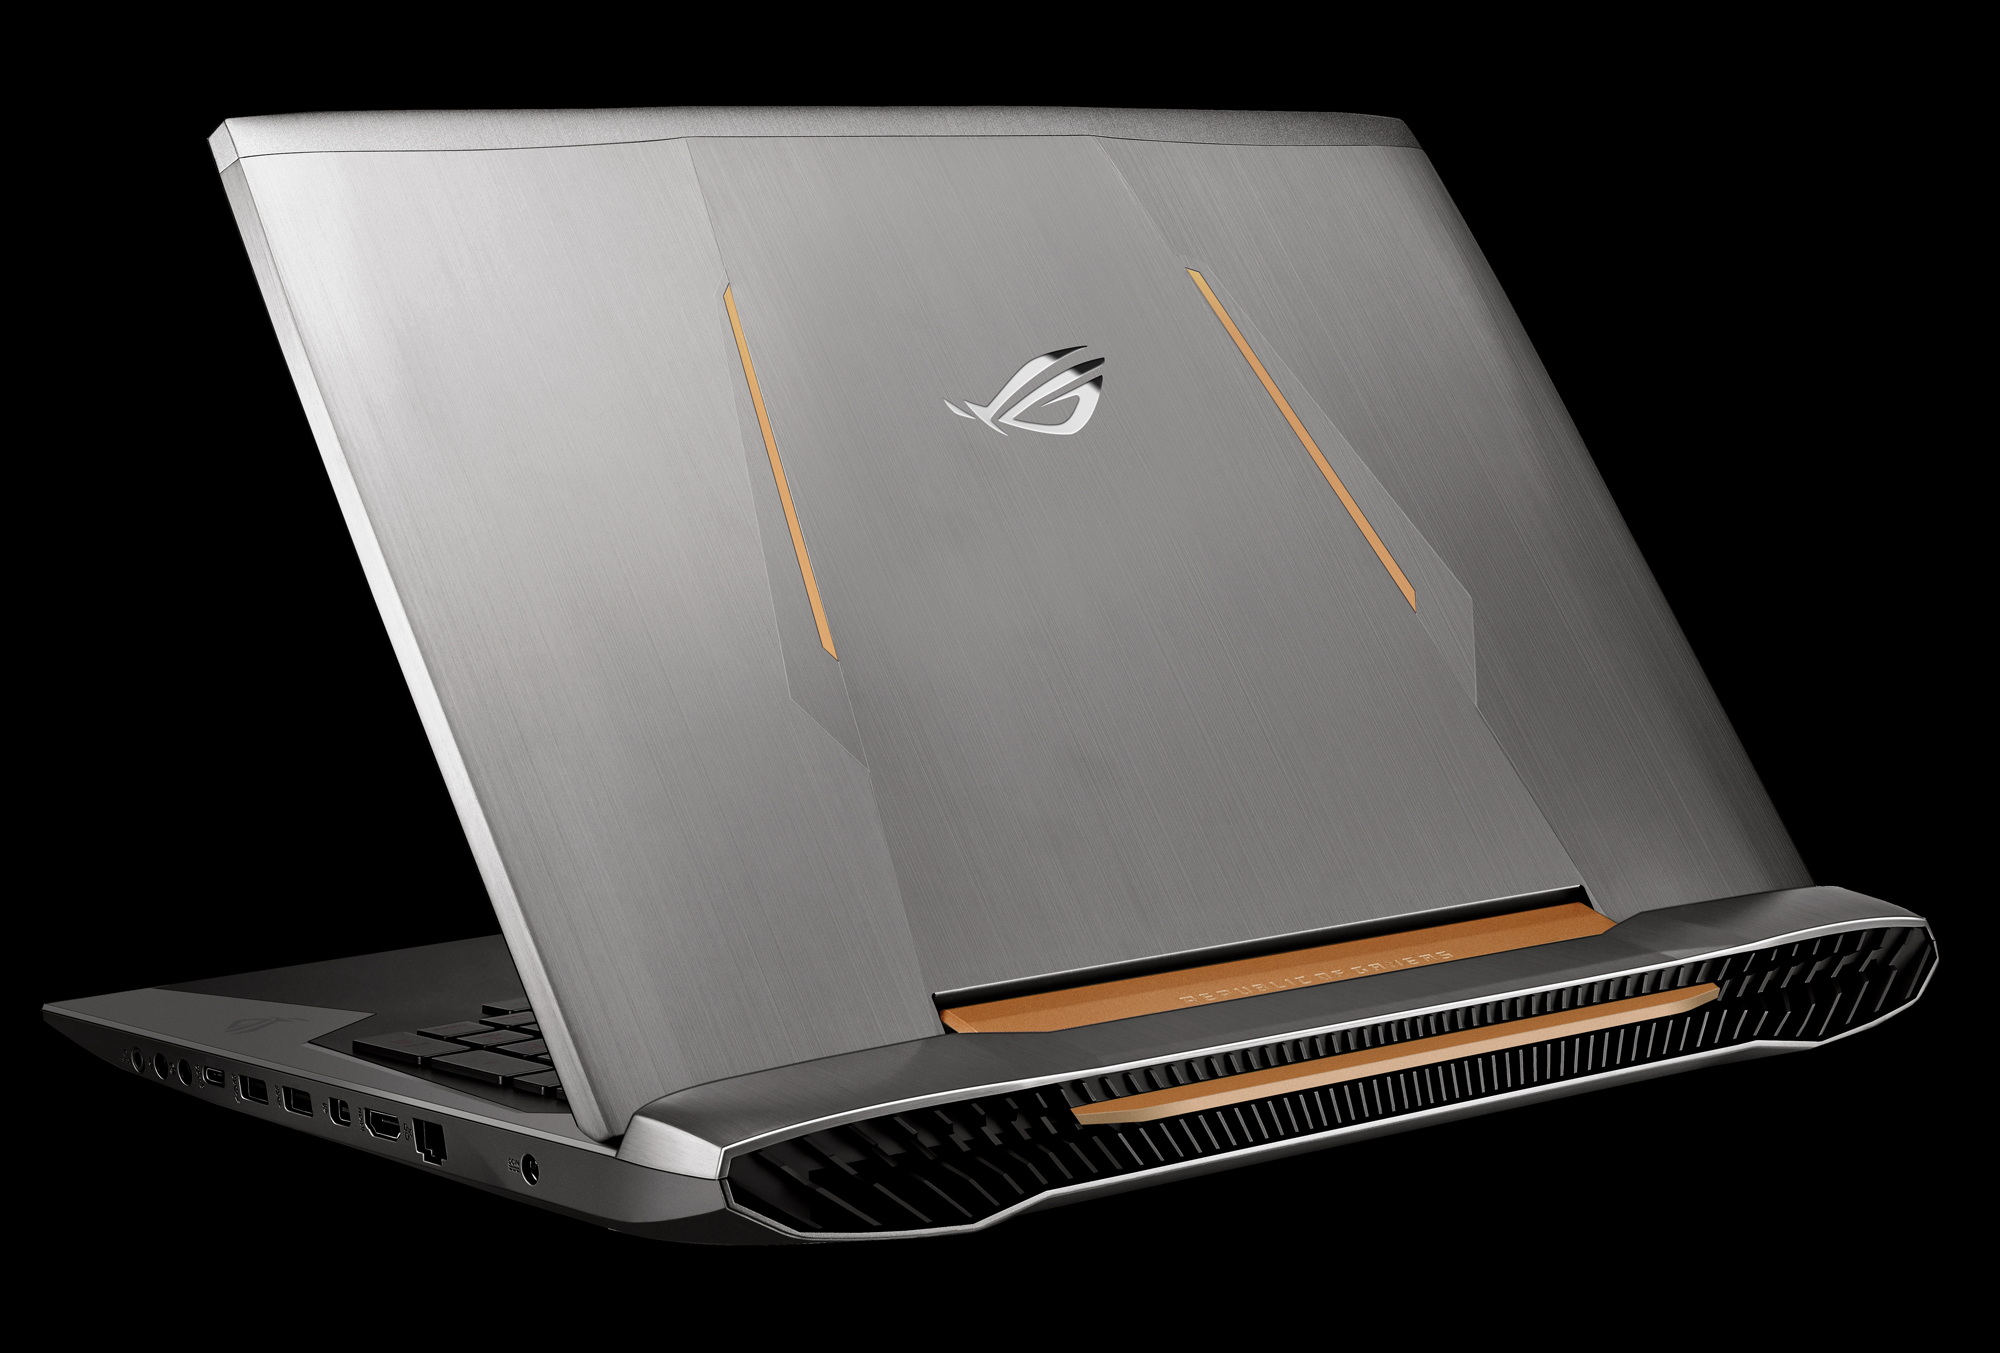 ASUS Republic of Gamers Announces ROG G752 Gaming Laptop ...